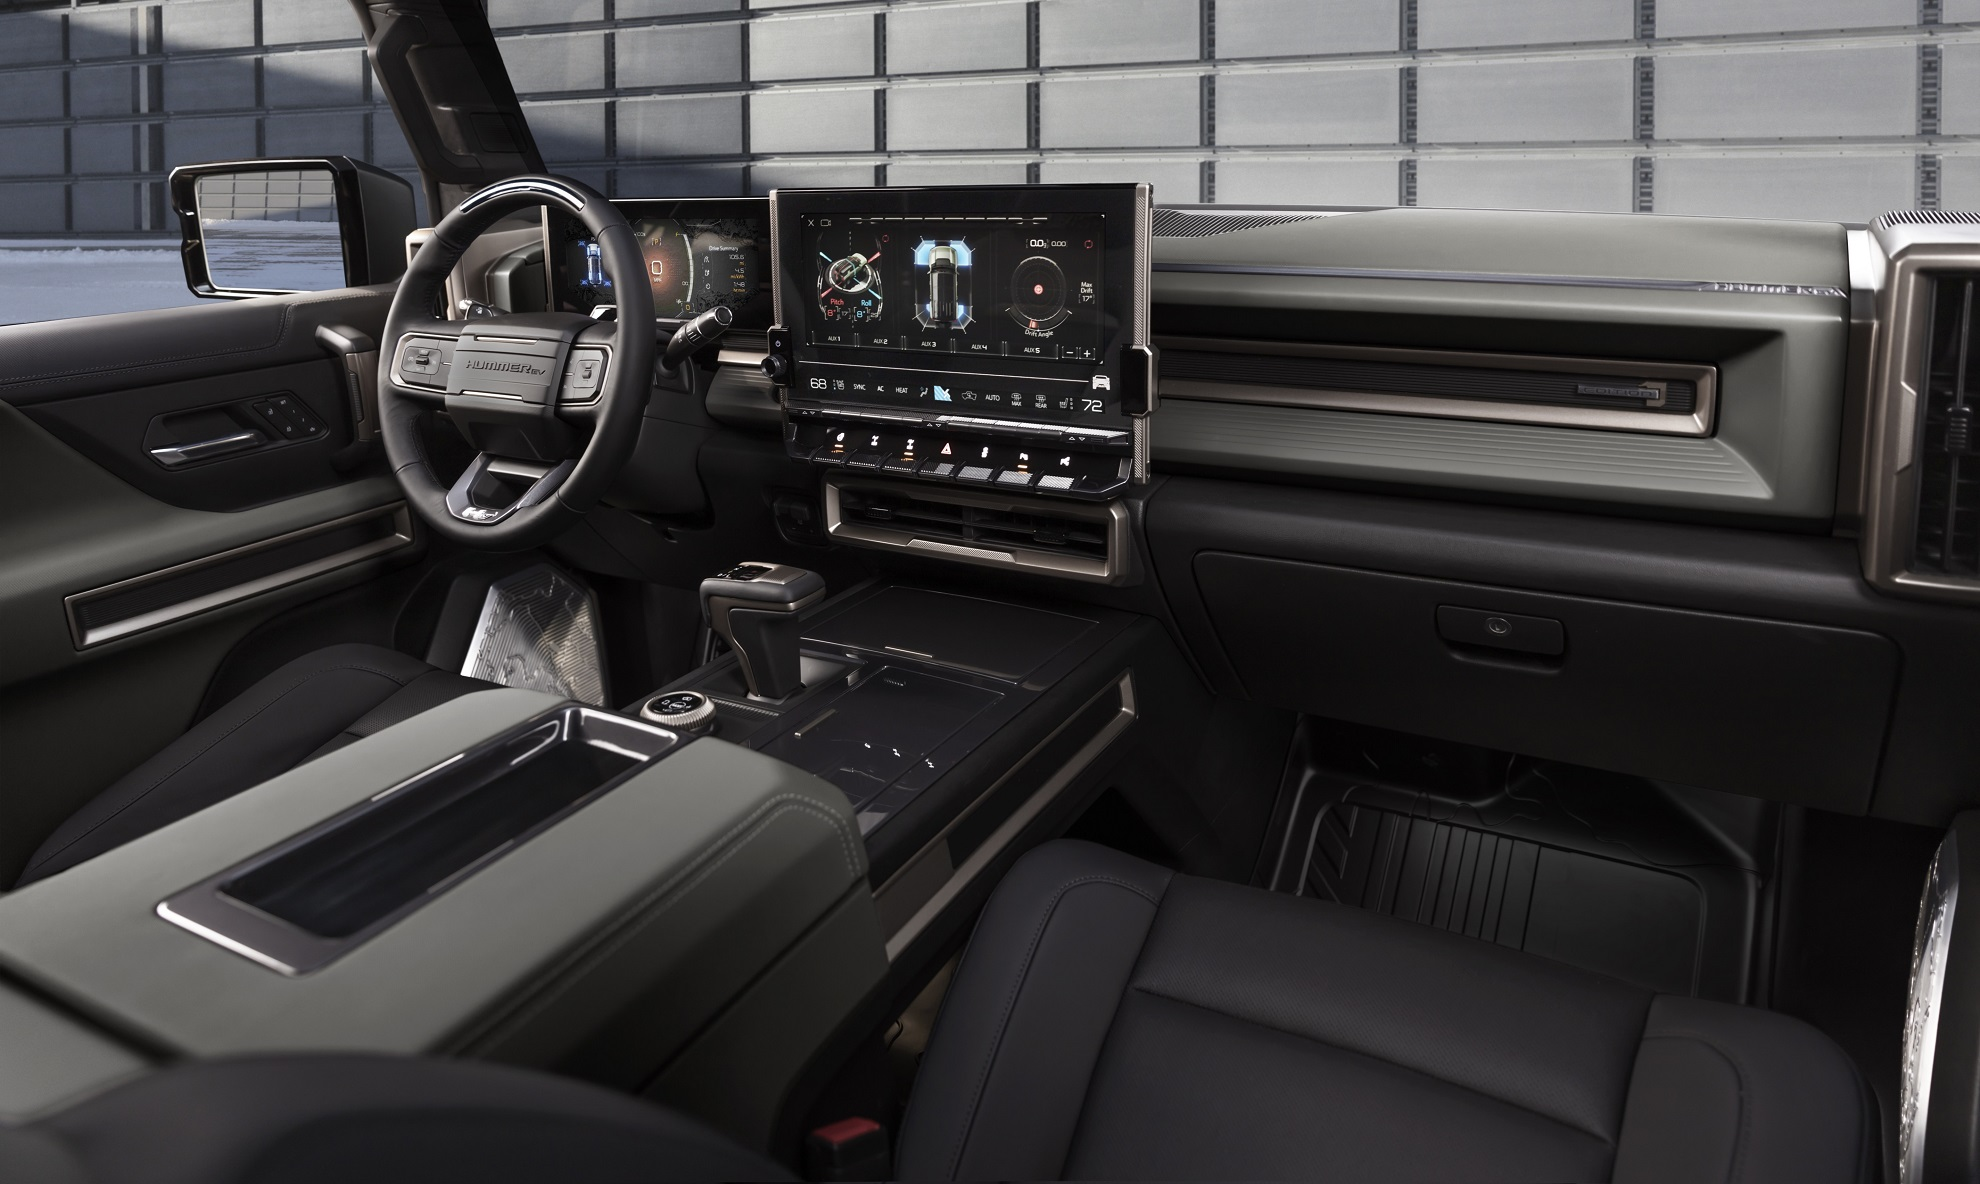 The GMC HUMMER EV SUV debuts in the low-contrast Lunar Shadow interior and includes a spacious cargo area and an architecturally inspired cabin.